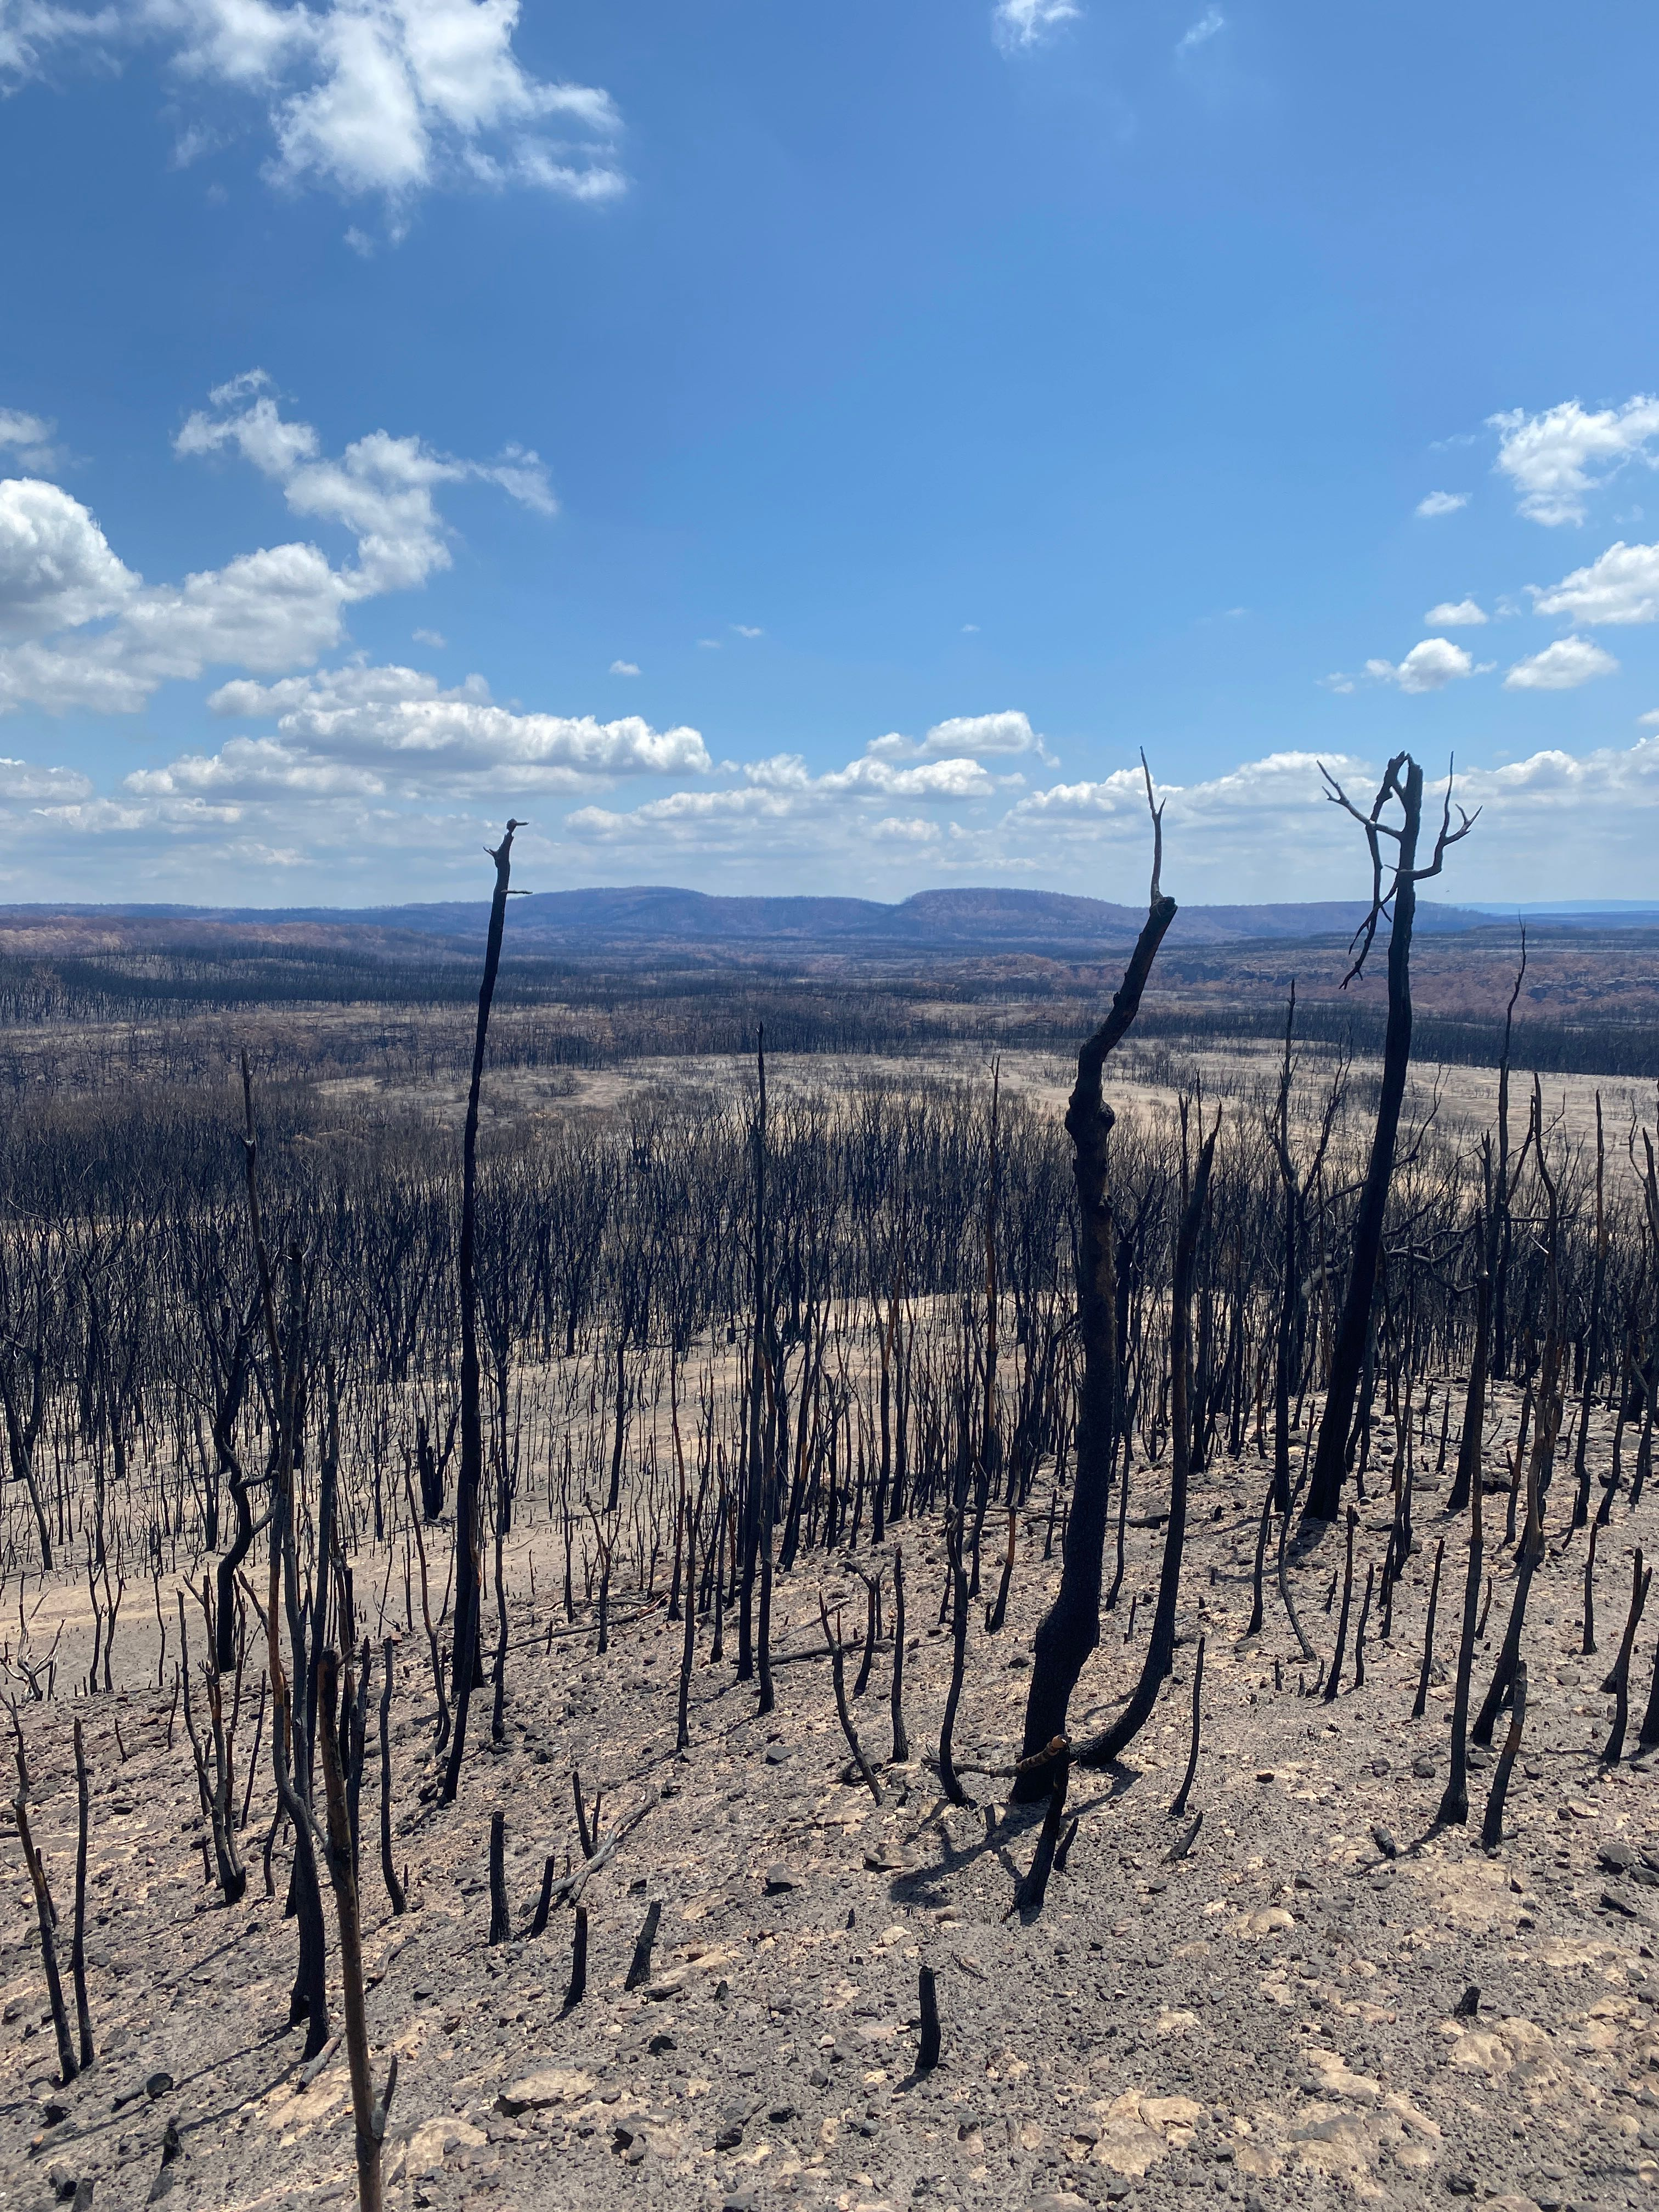 Image showing a landscape after a fire